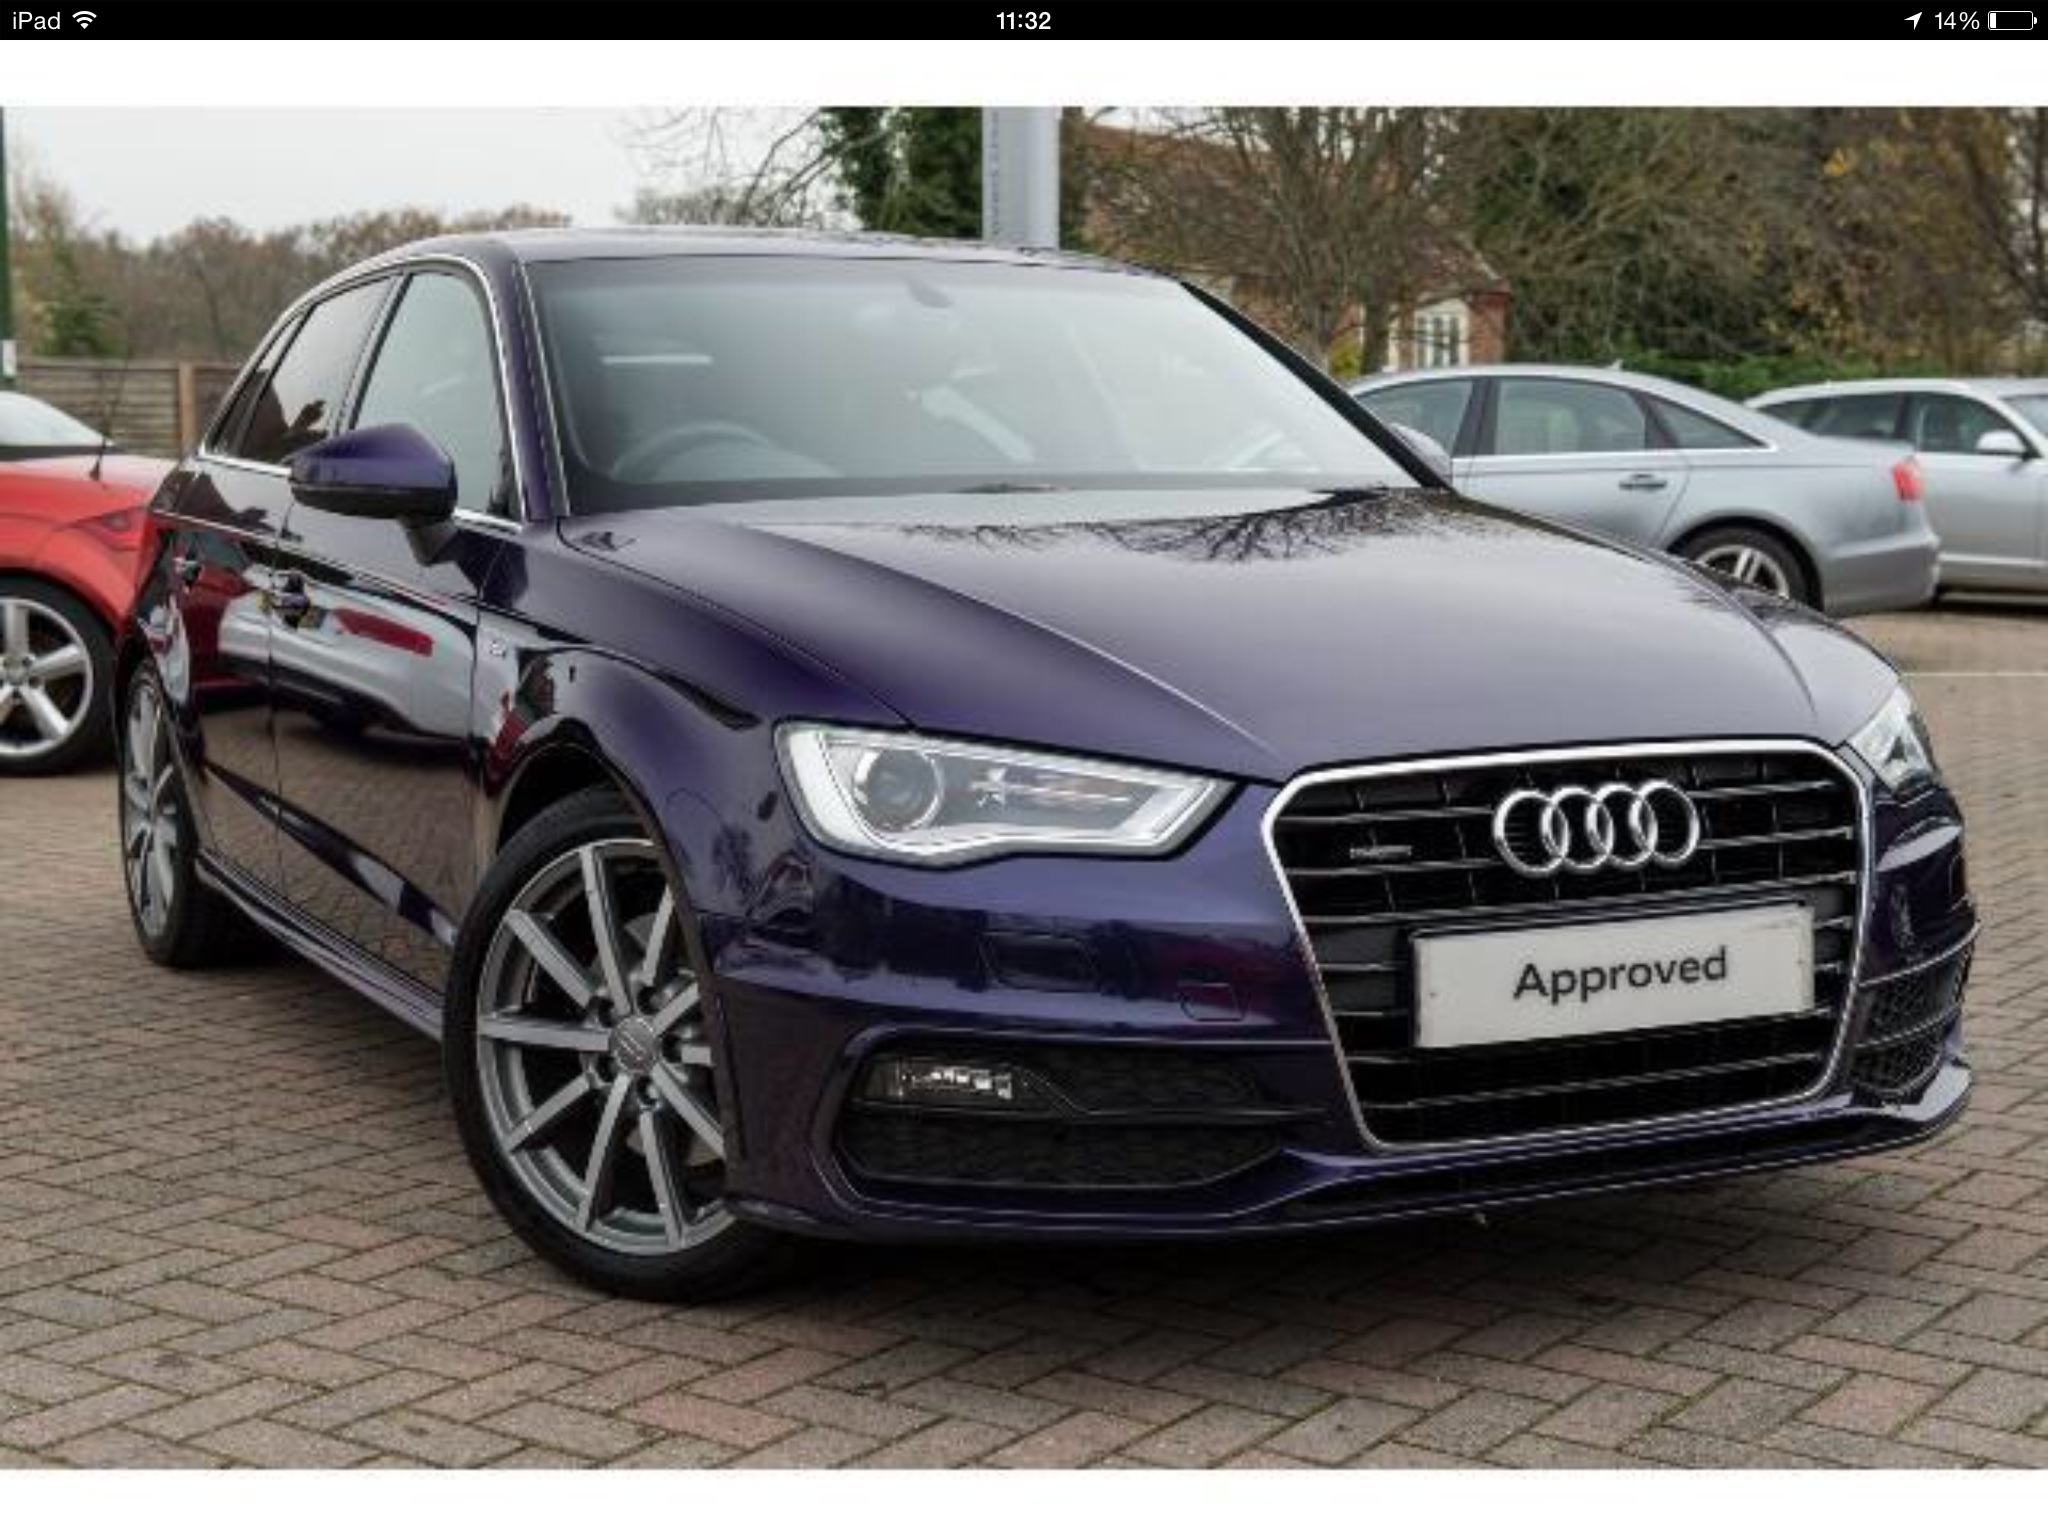 Audi a3 extended warranty price 13